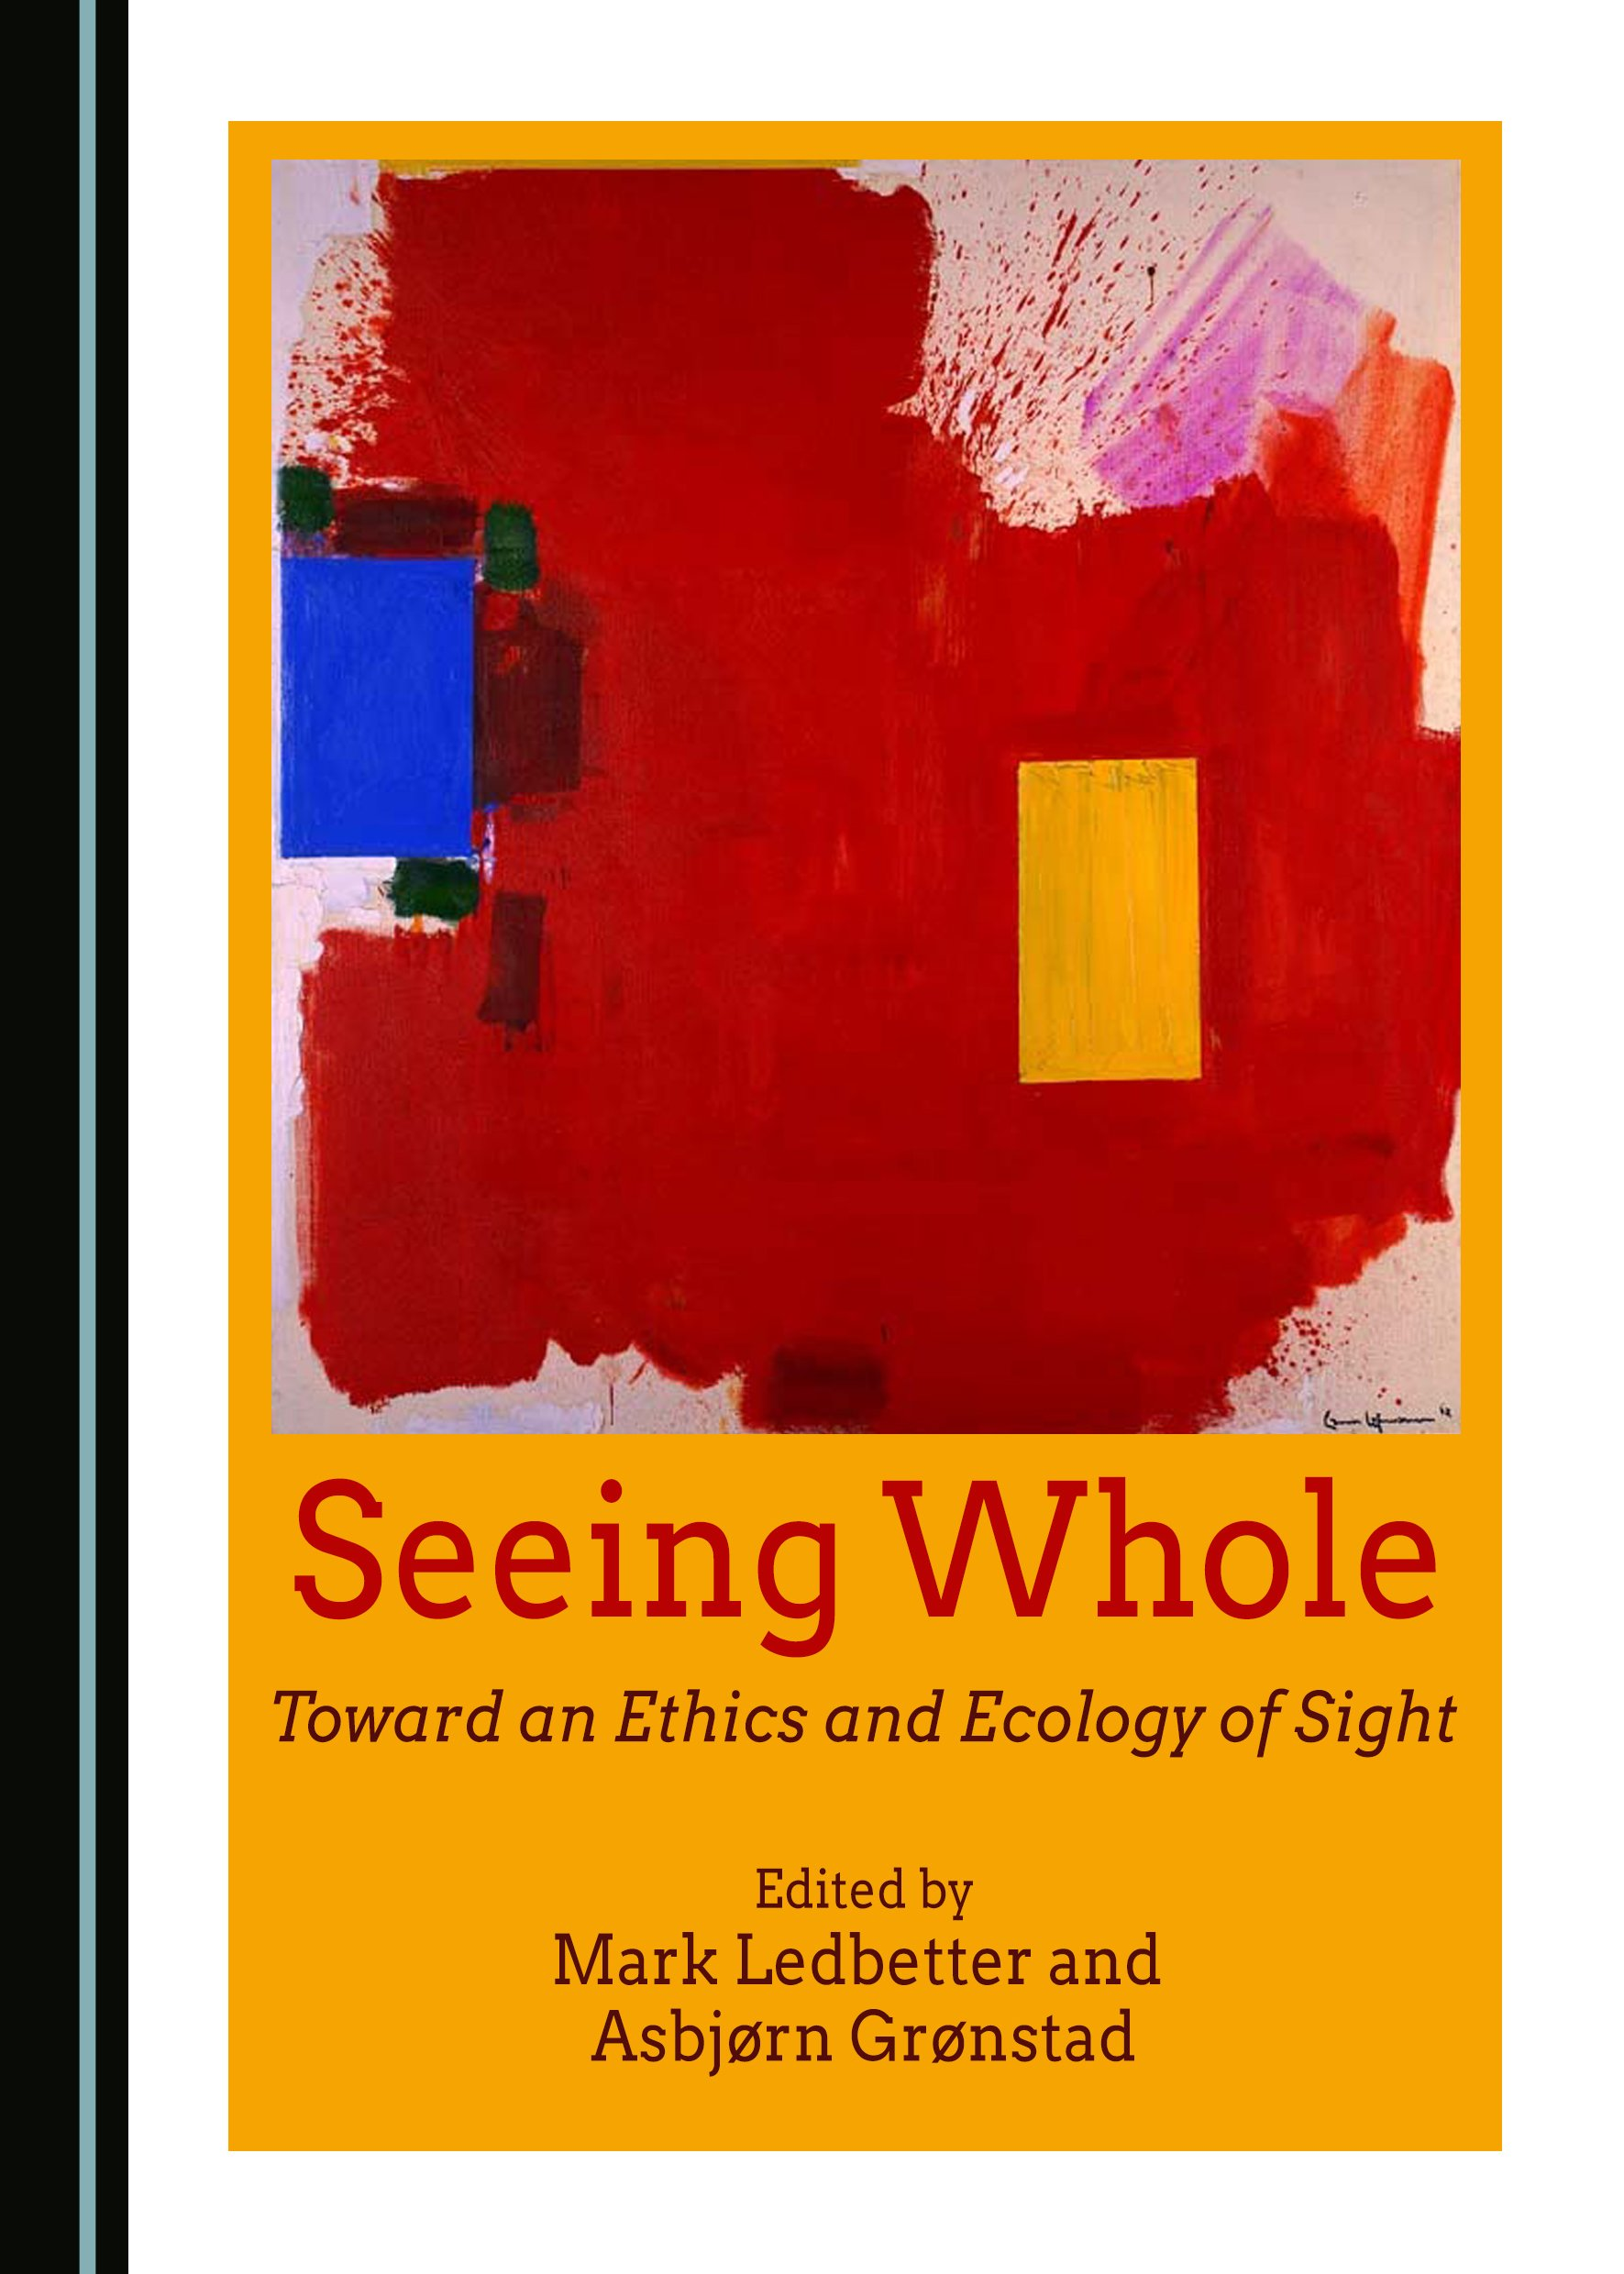 Seeing Whole: Toward an Ethics and Ecology of Sight